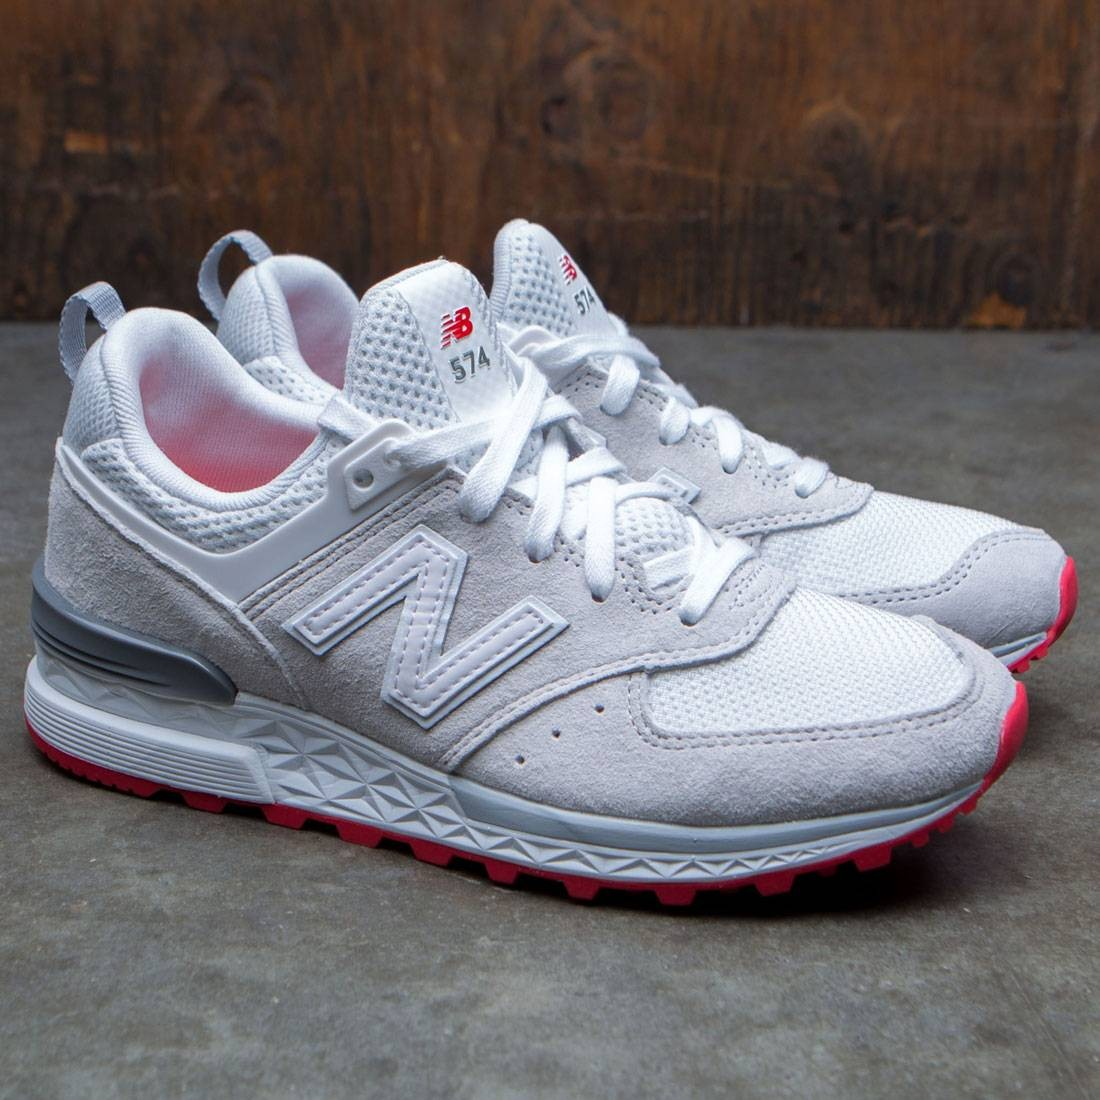 new balance 574 white red, OFF 79%,Best